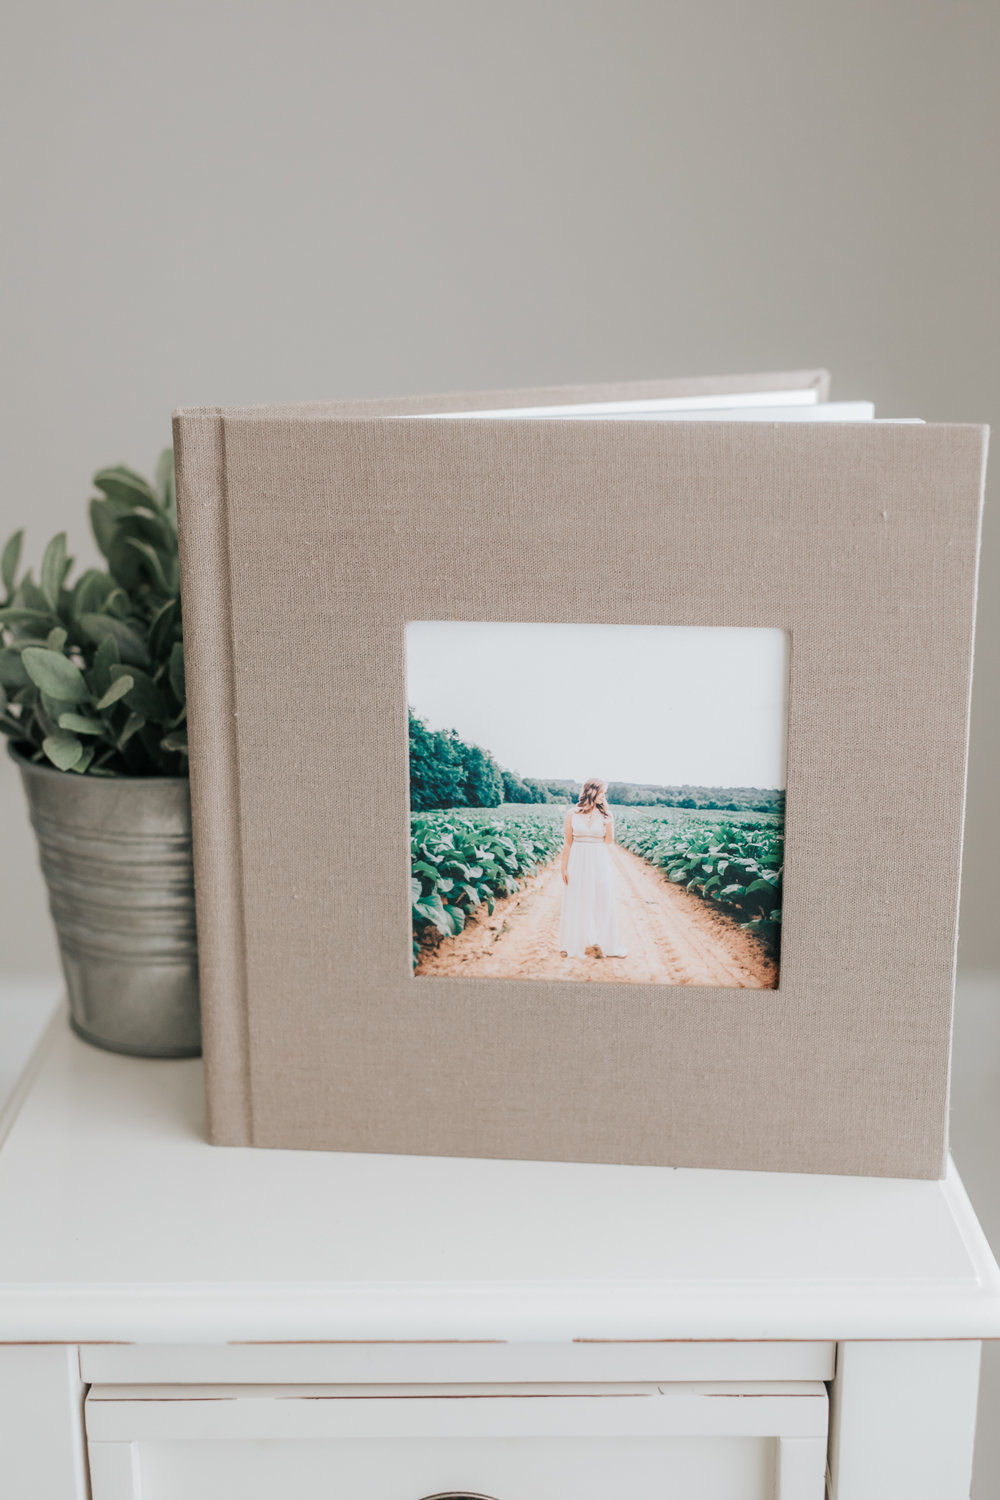 Album   Upgrade to 12x12 album for $150  Panoramic specially designed spreads wth thick rigid lay flat pages